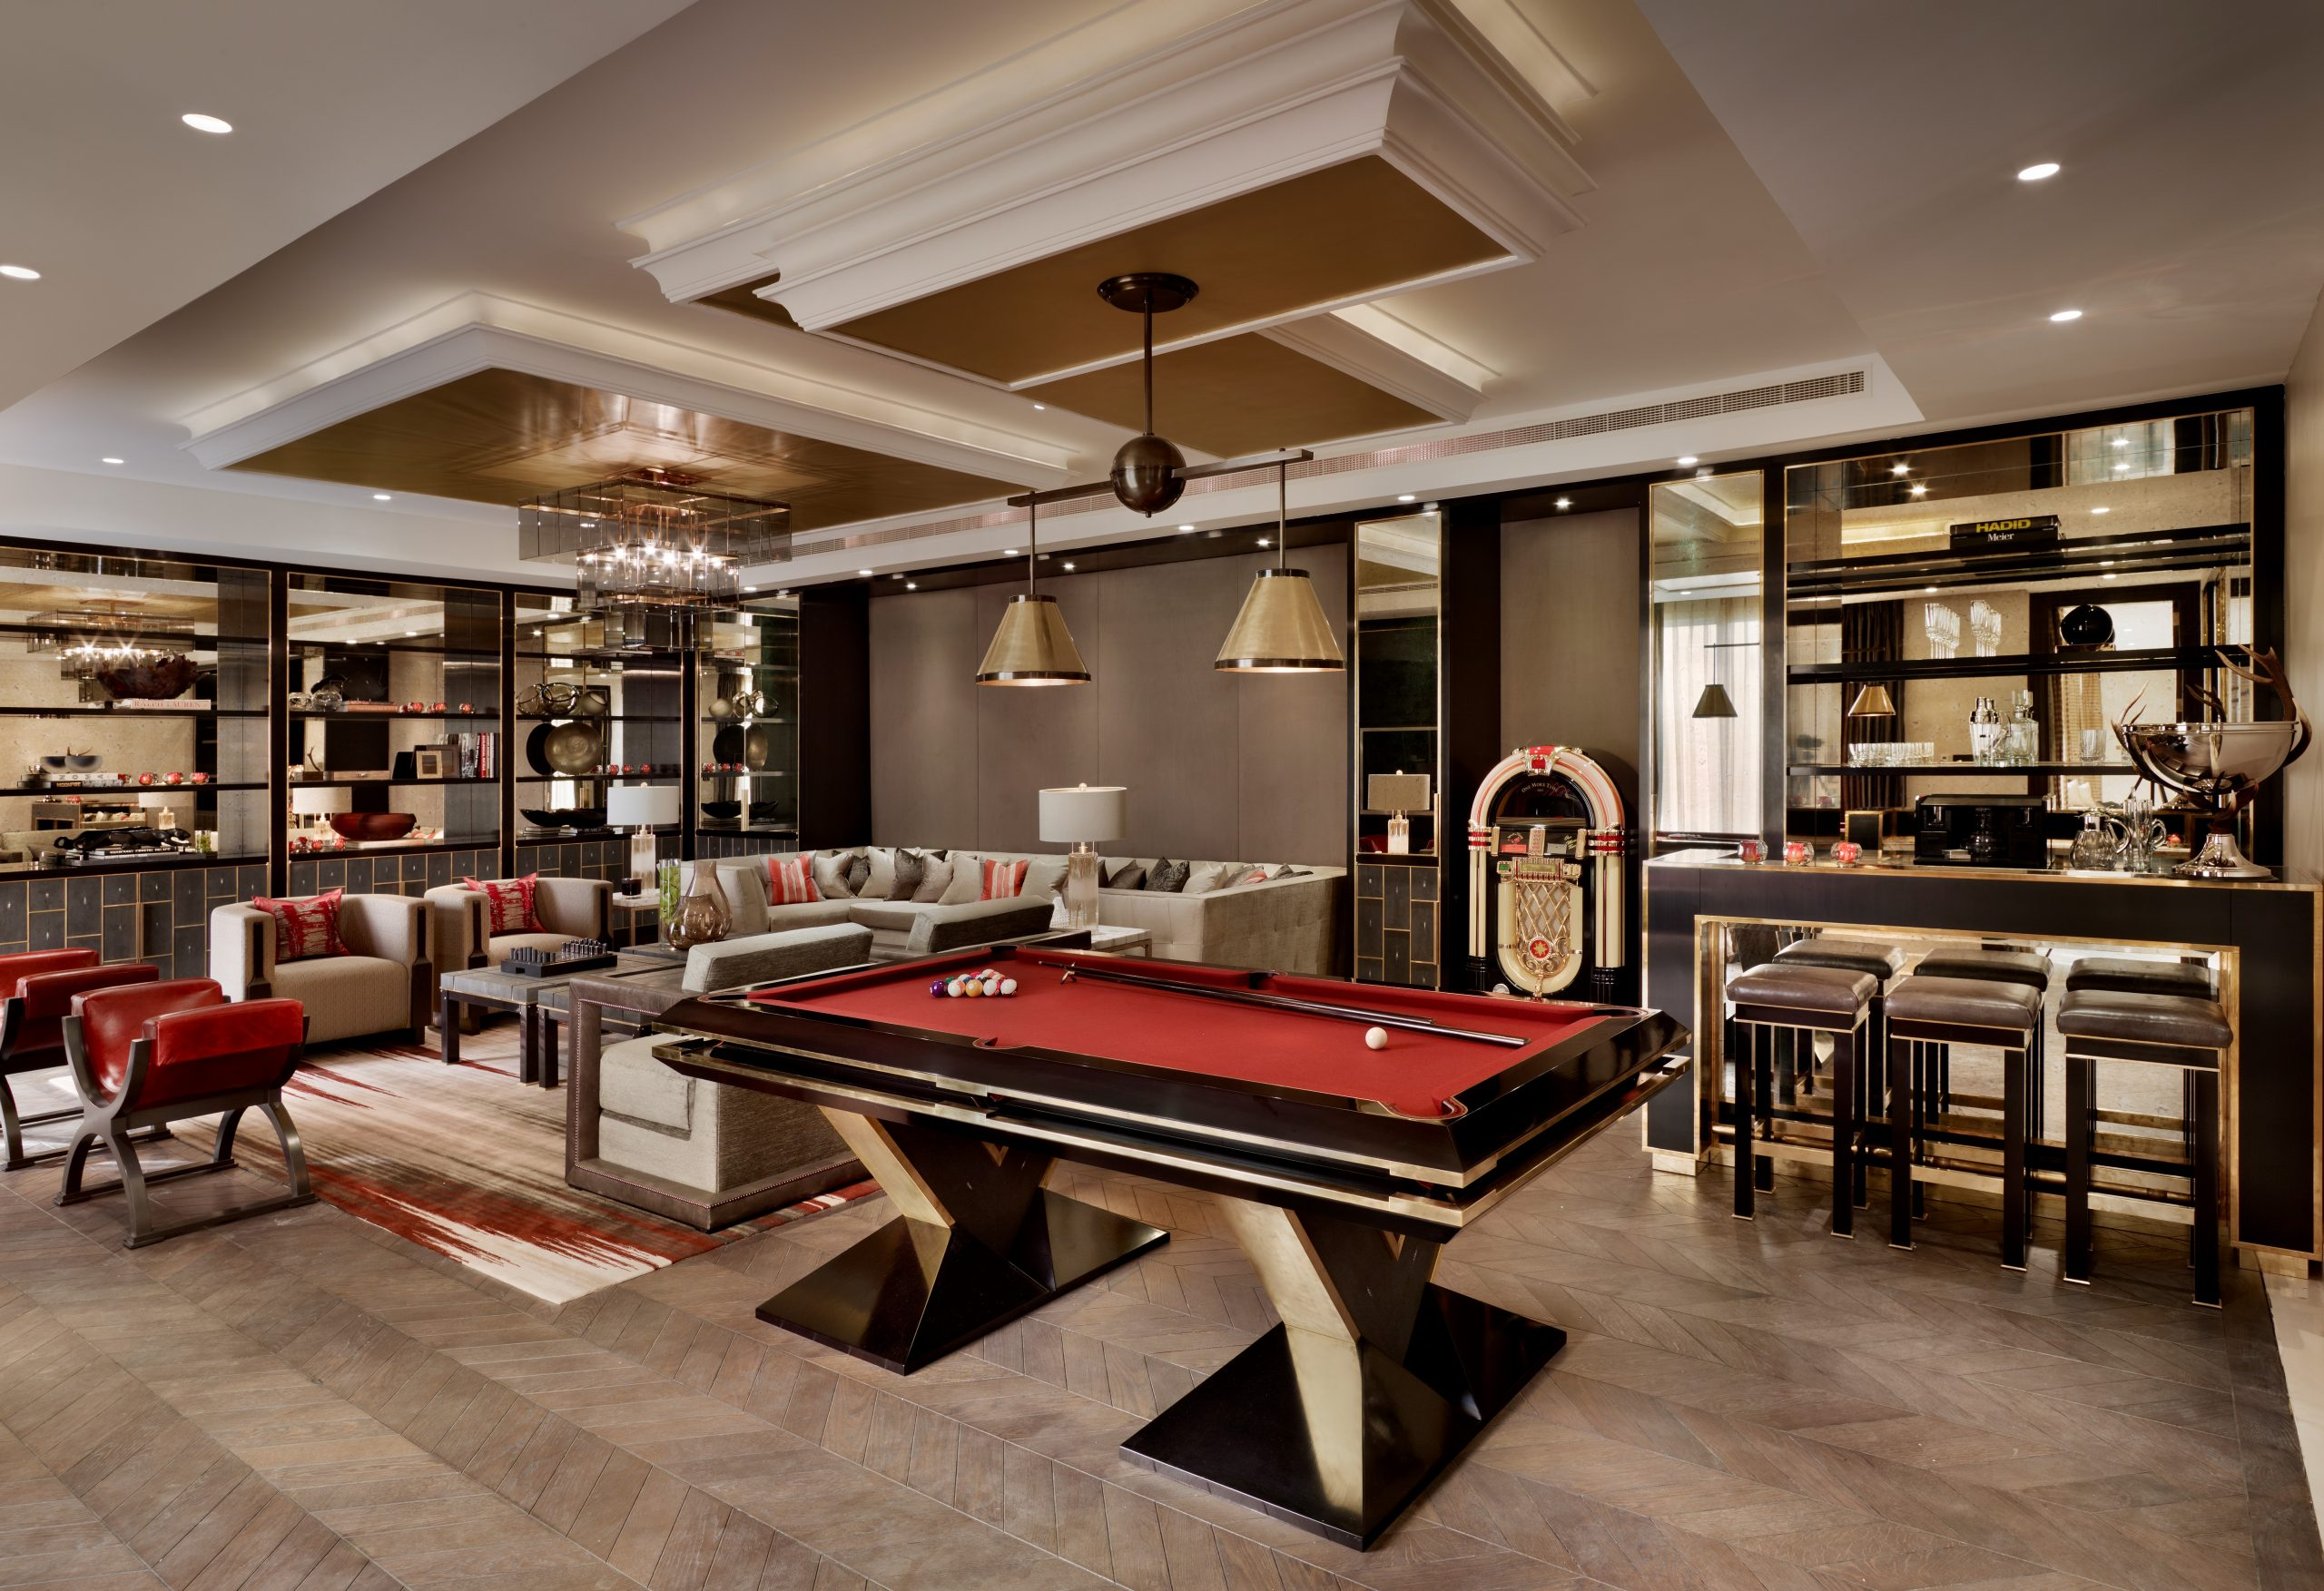 Interior Designed Games Room